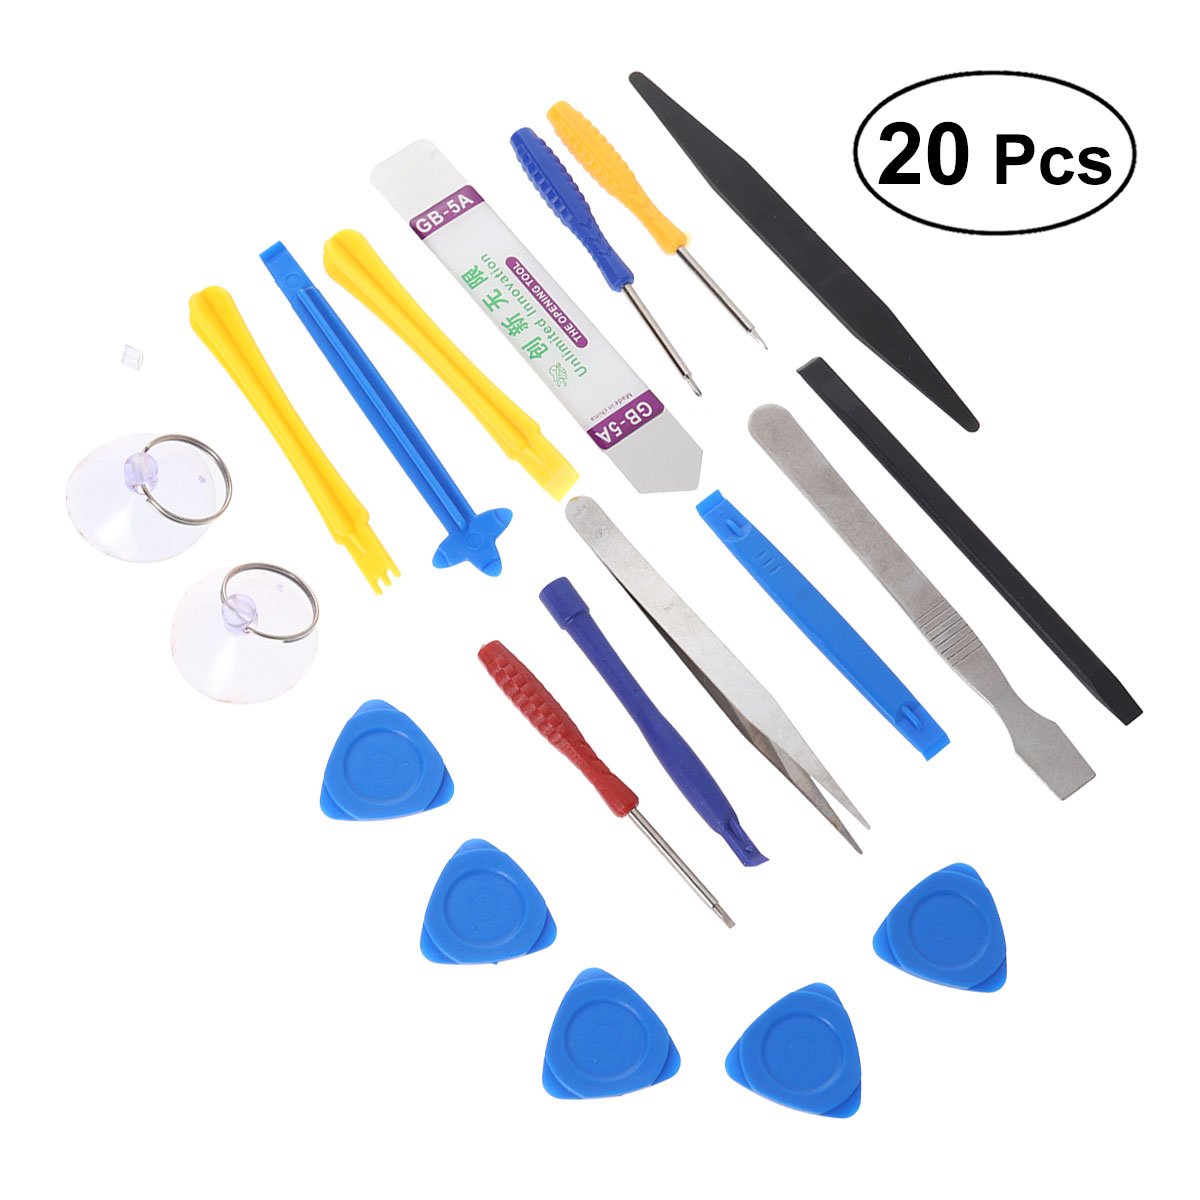 20 Pcs/ Set Disassembly Maintenance Phone Repair Kit Set for Repairing Laptop PC Notebook Computer Electronics and More